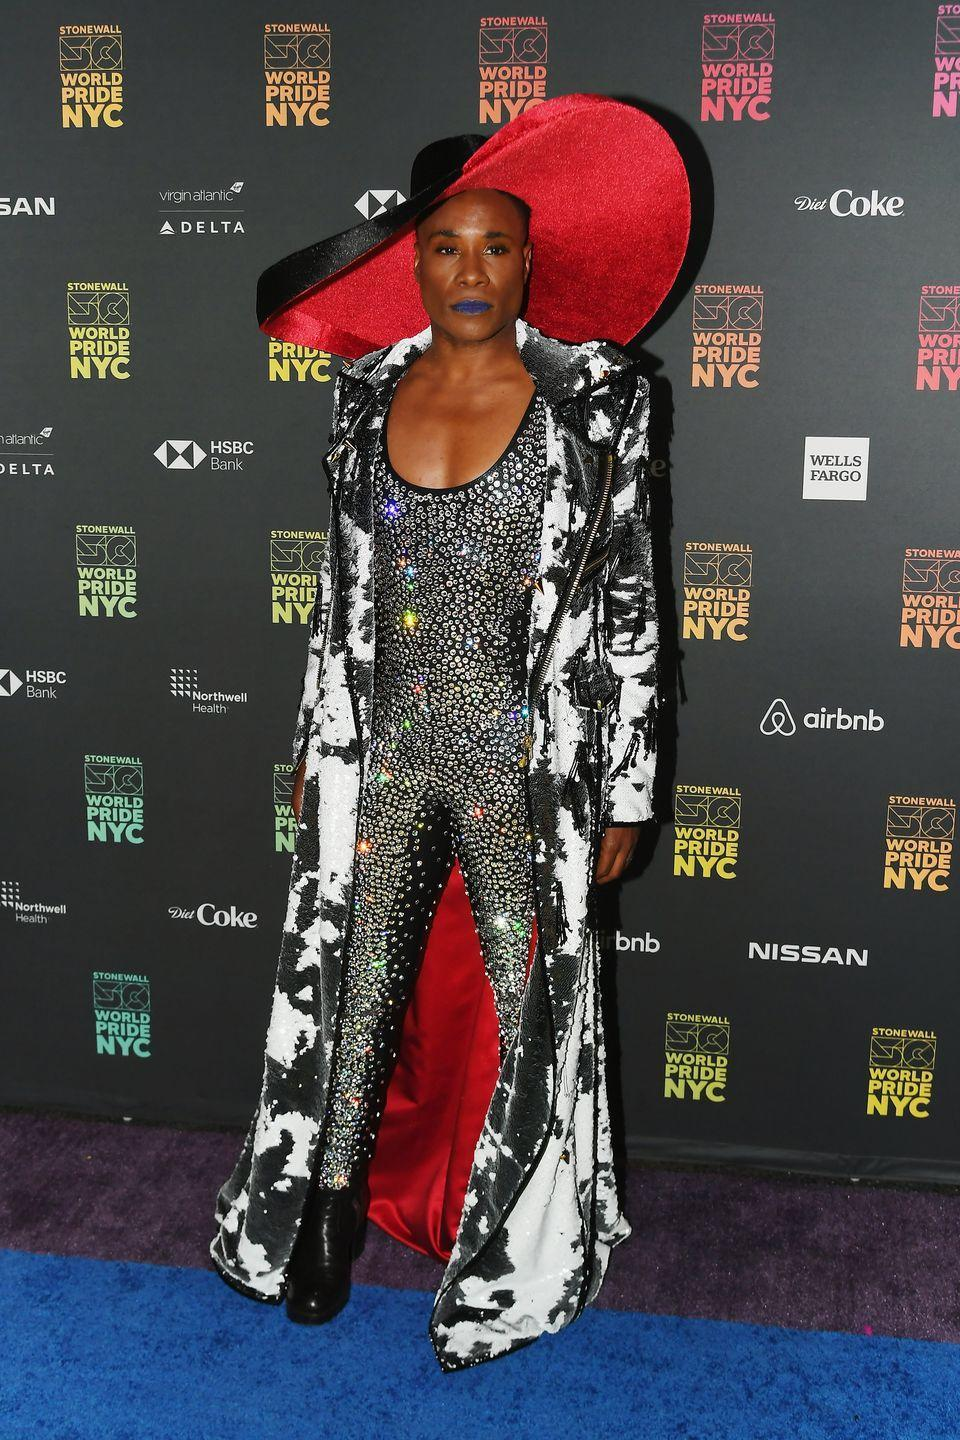 <p>Porter at the 2019 World Pride NYC Opening Ceremony in a rhinestone bodysuit, long black-and-white motorcycle jacket, and a wide-brim hat. </p>